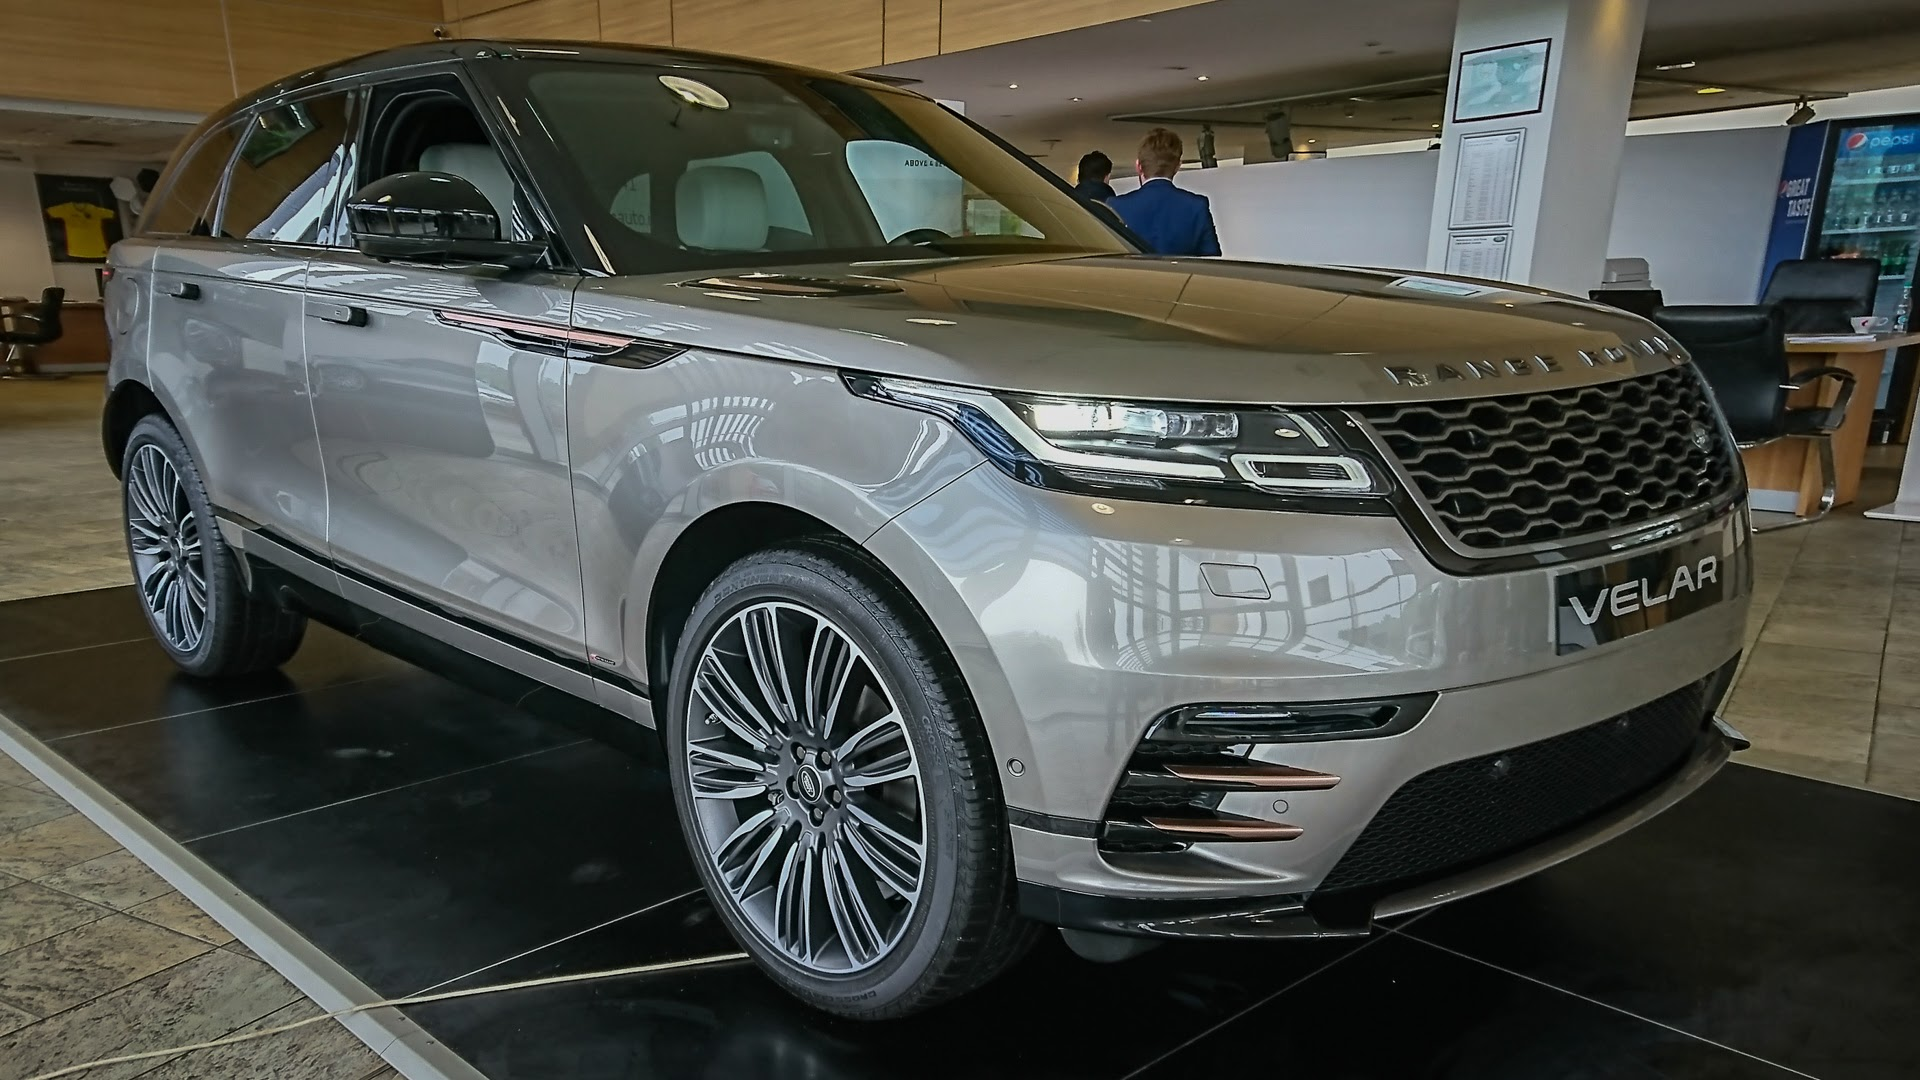 range rover velar detalii de la prezentarea na ional unde i c nd l pute i vedea gadget. Black Bedroom Furniture Sets. Home Design Ideas